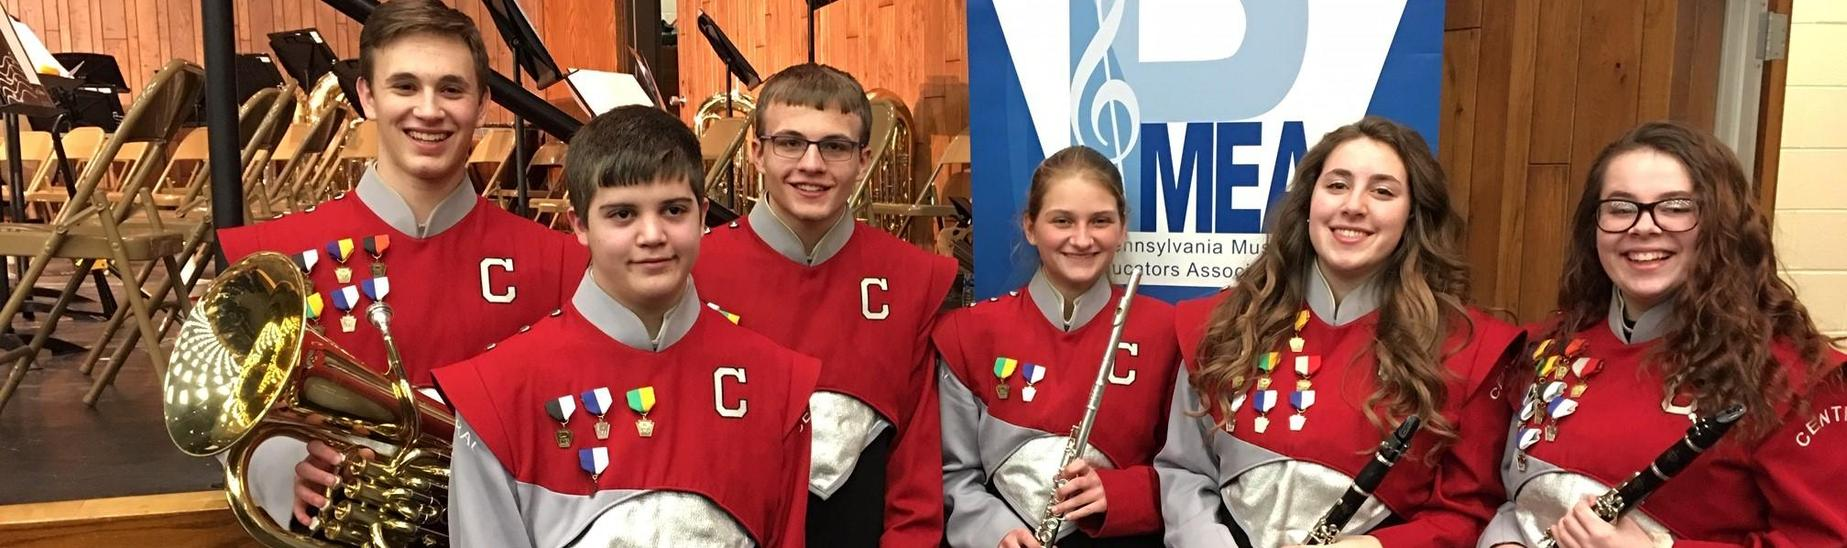 Regional Band (March 7-8). Katie Ponder (far right) is advancing to the State Band Competition for Clarinet.